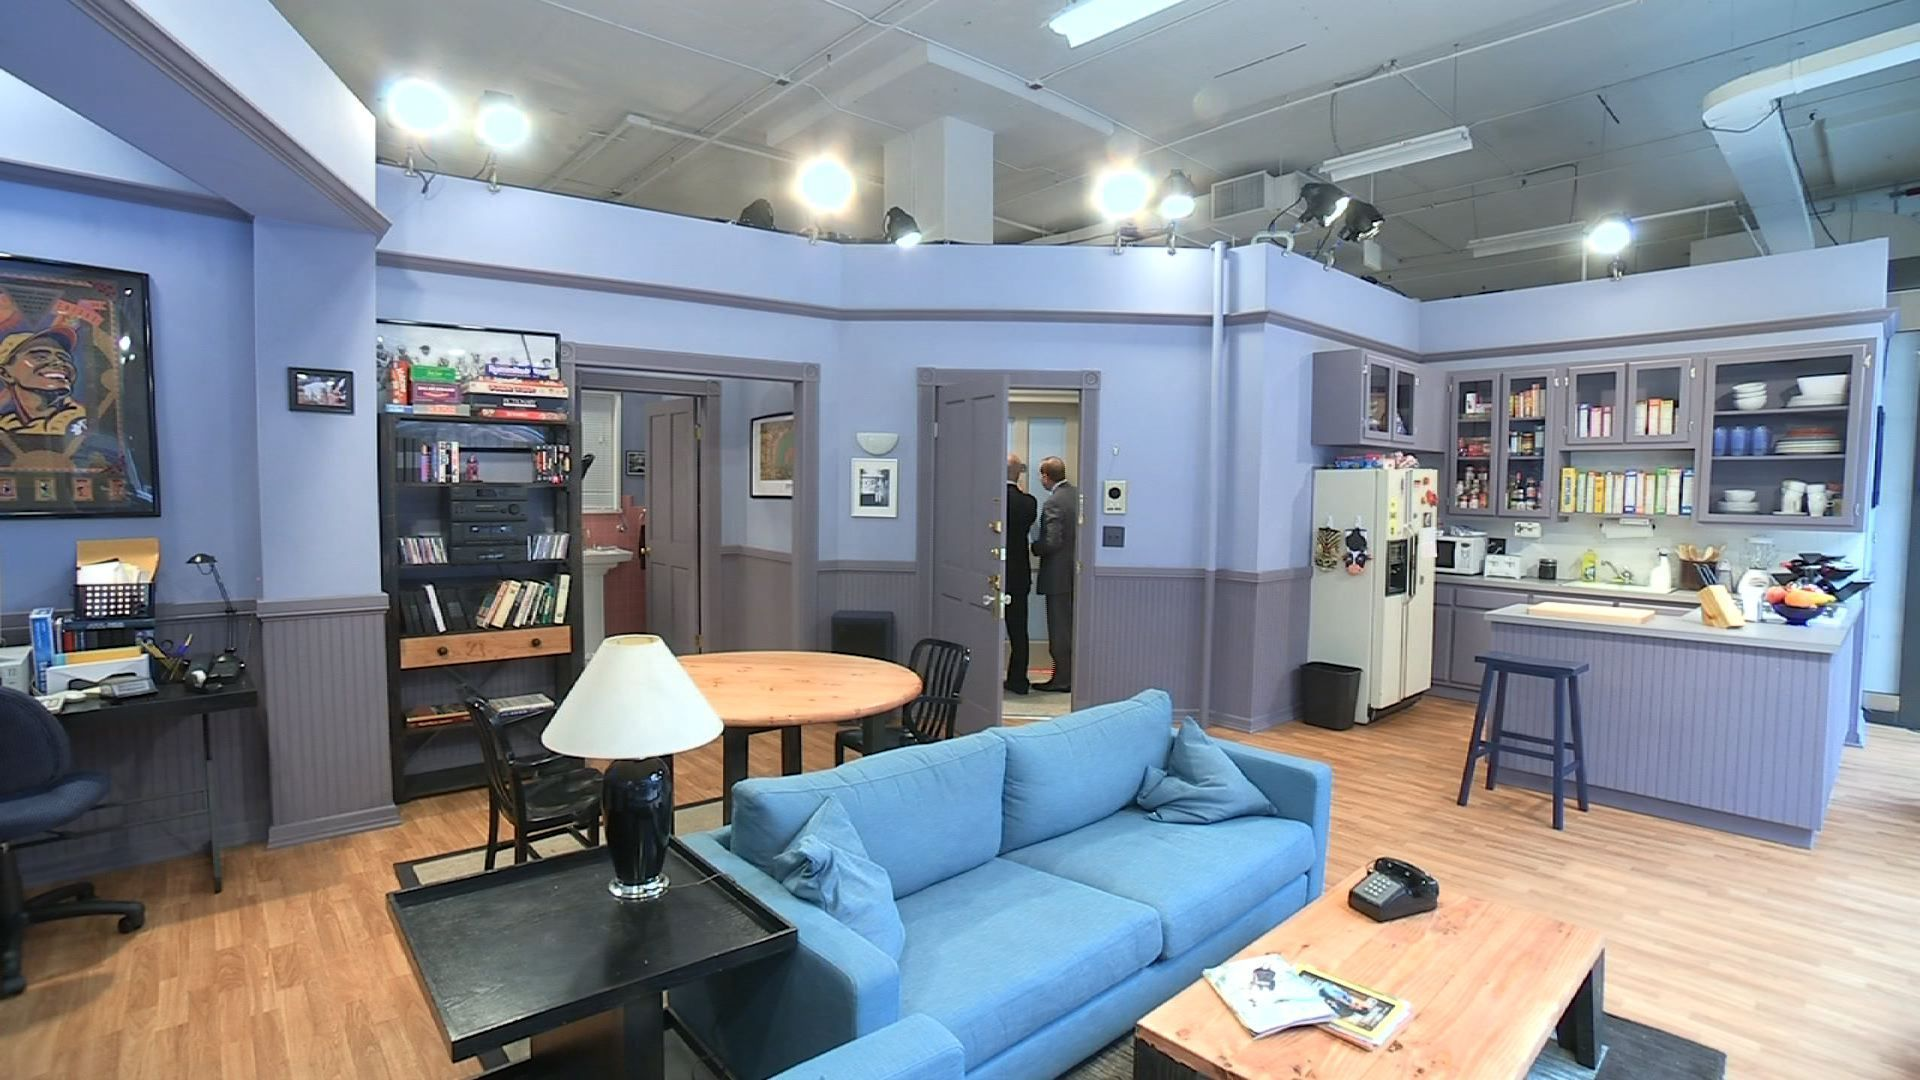 Hulu recreates Seinfeld apartment as it releases episodes ...